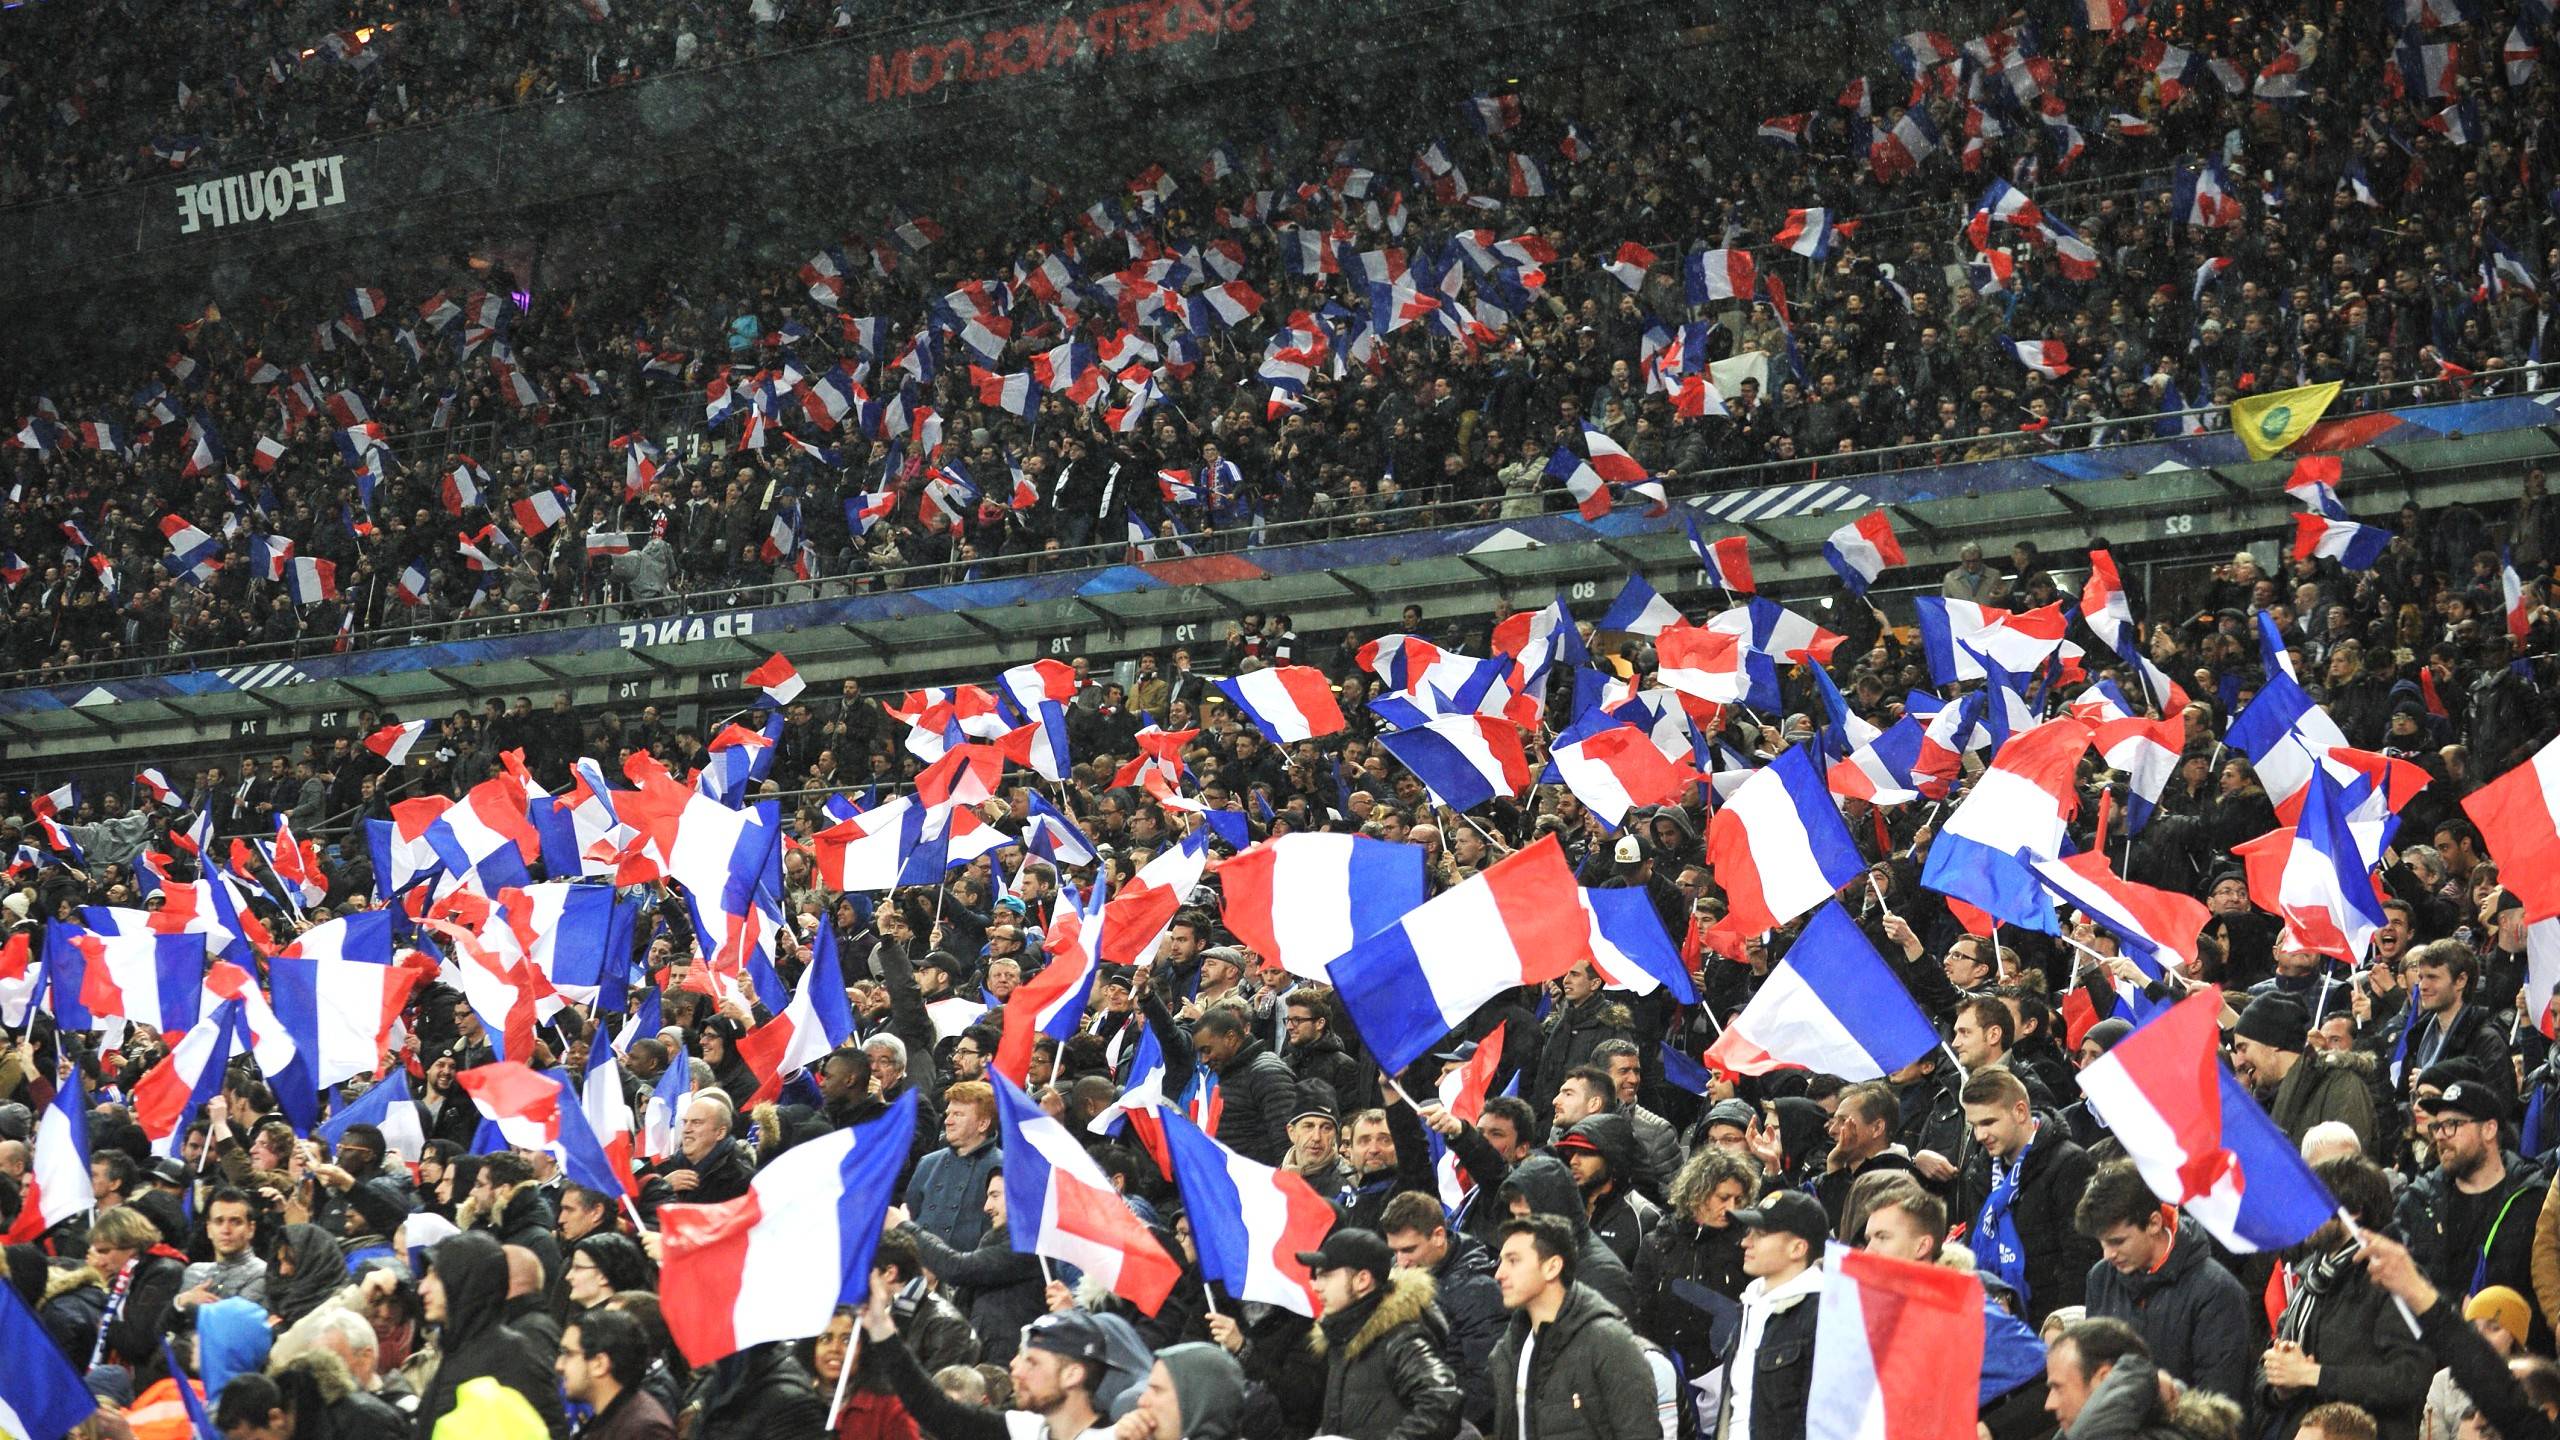 Football supporters équipe de France.jpg